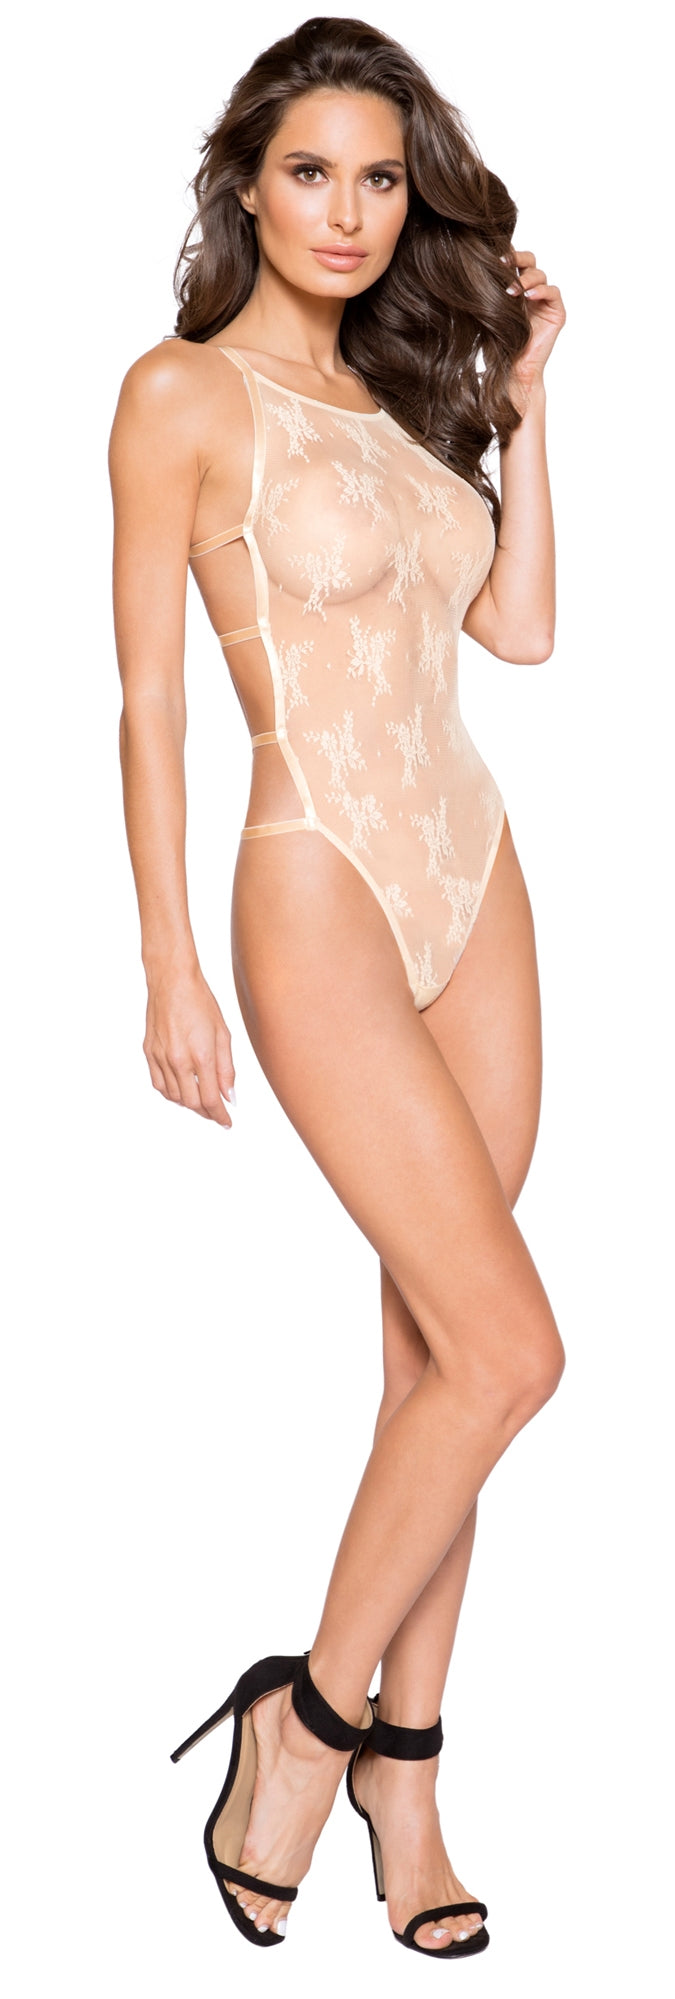 RM-LI272 High neckline sheer lace teddy front